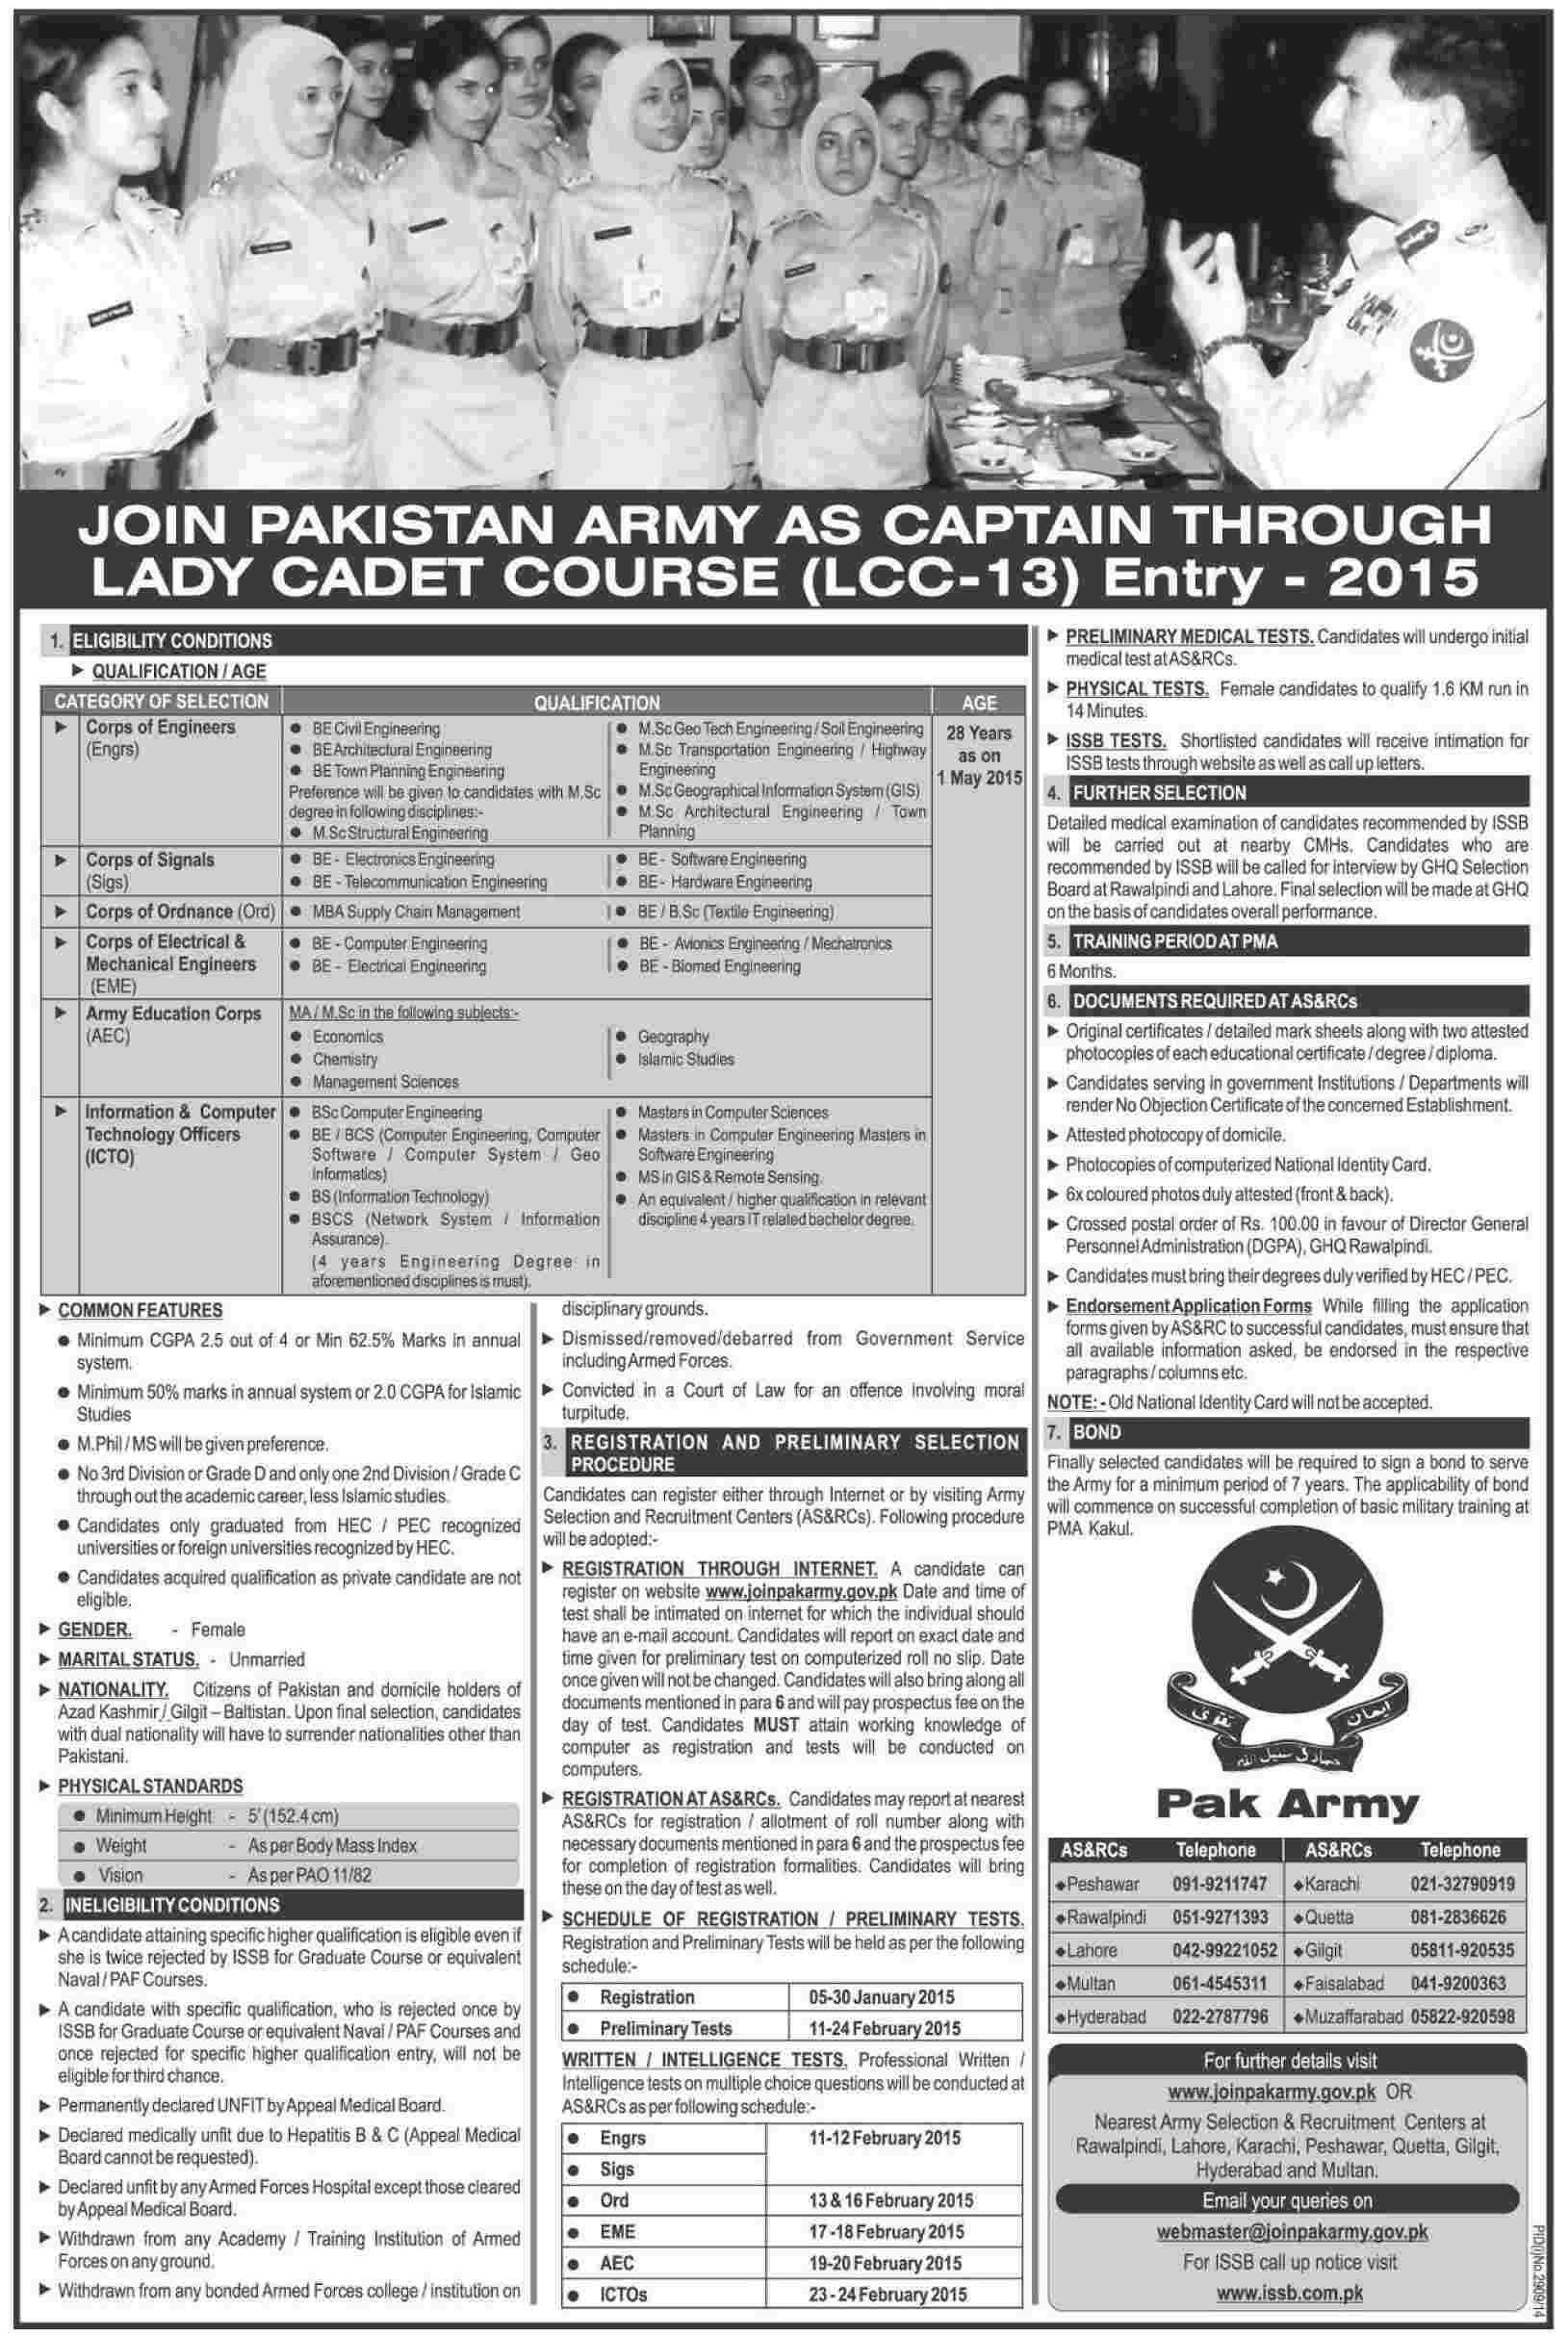 Join Pakistan Army As Captain Through Lady Cadet Course LCC 13 2015 Registration Online